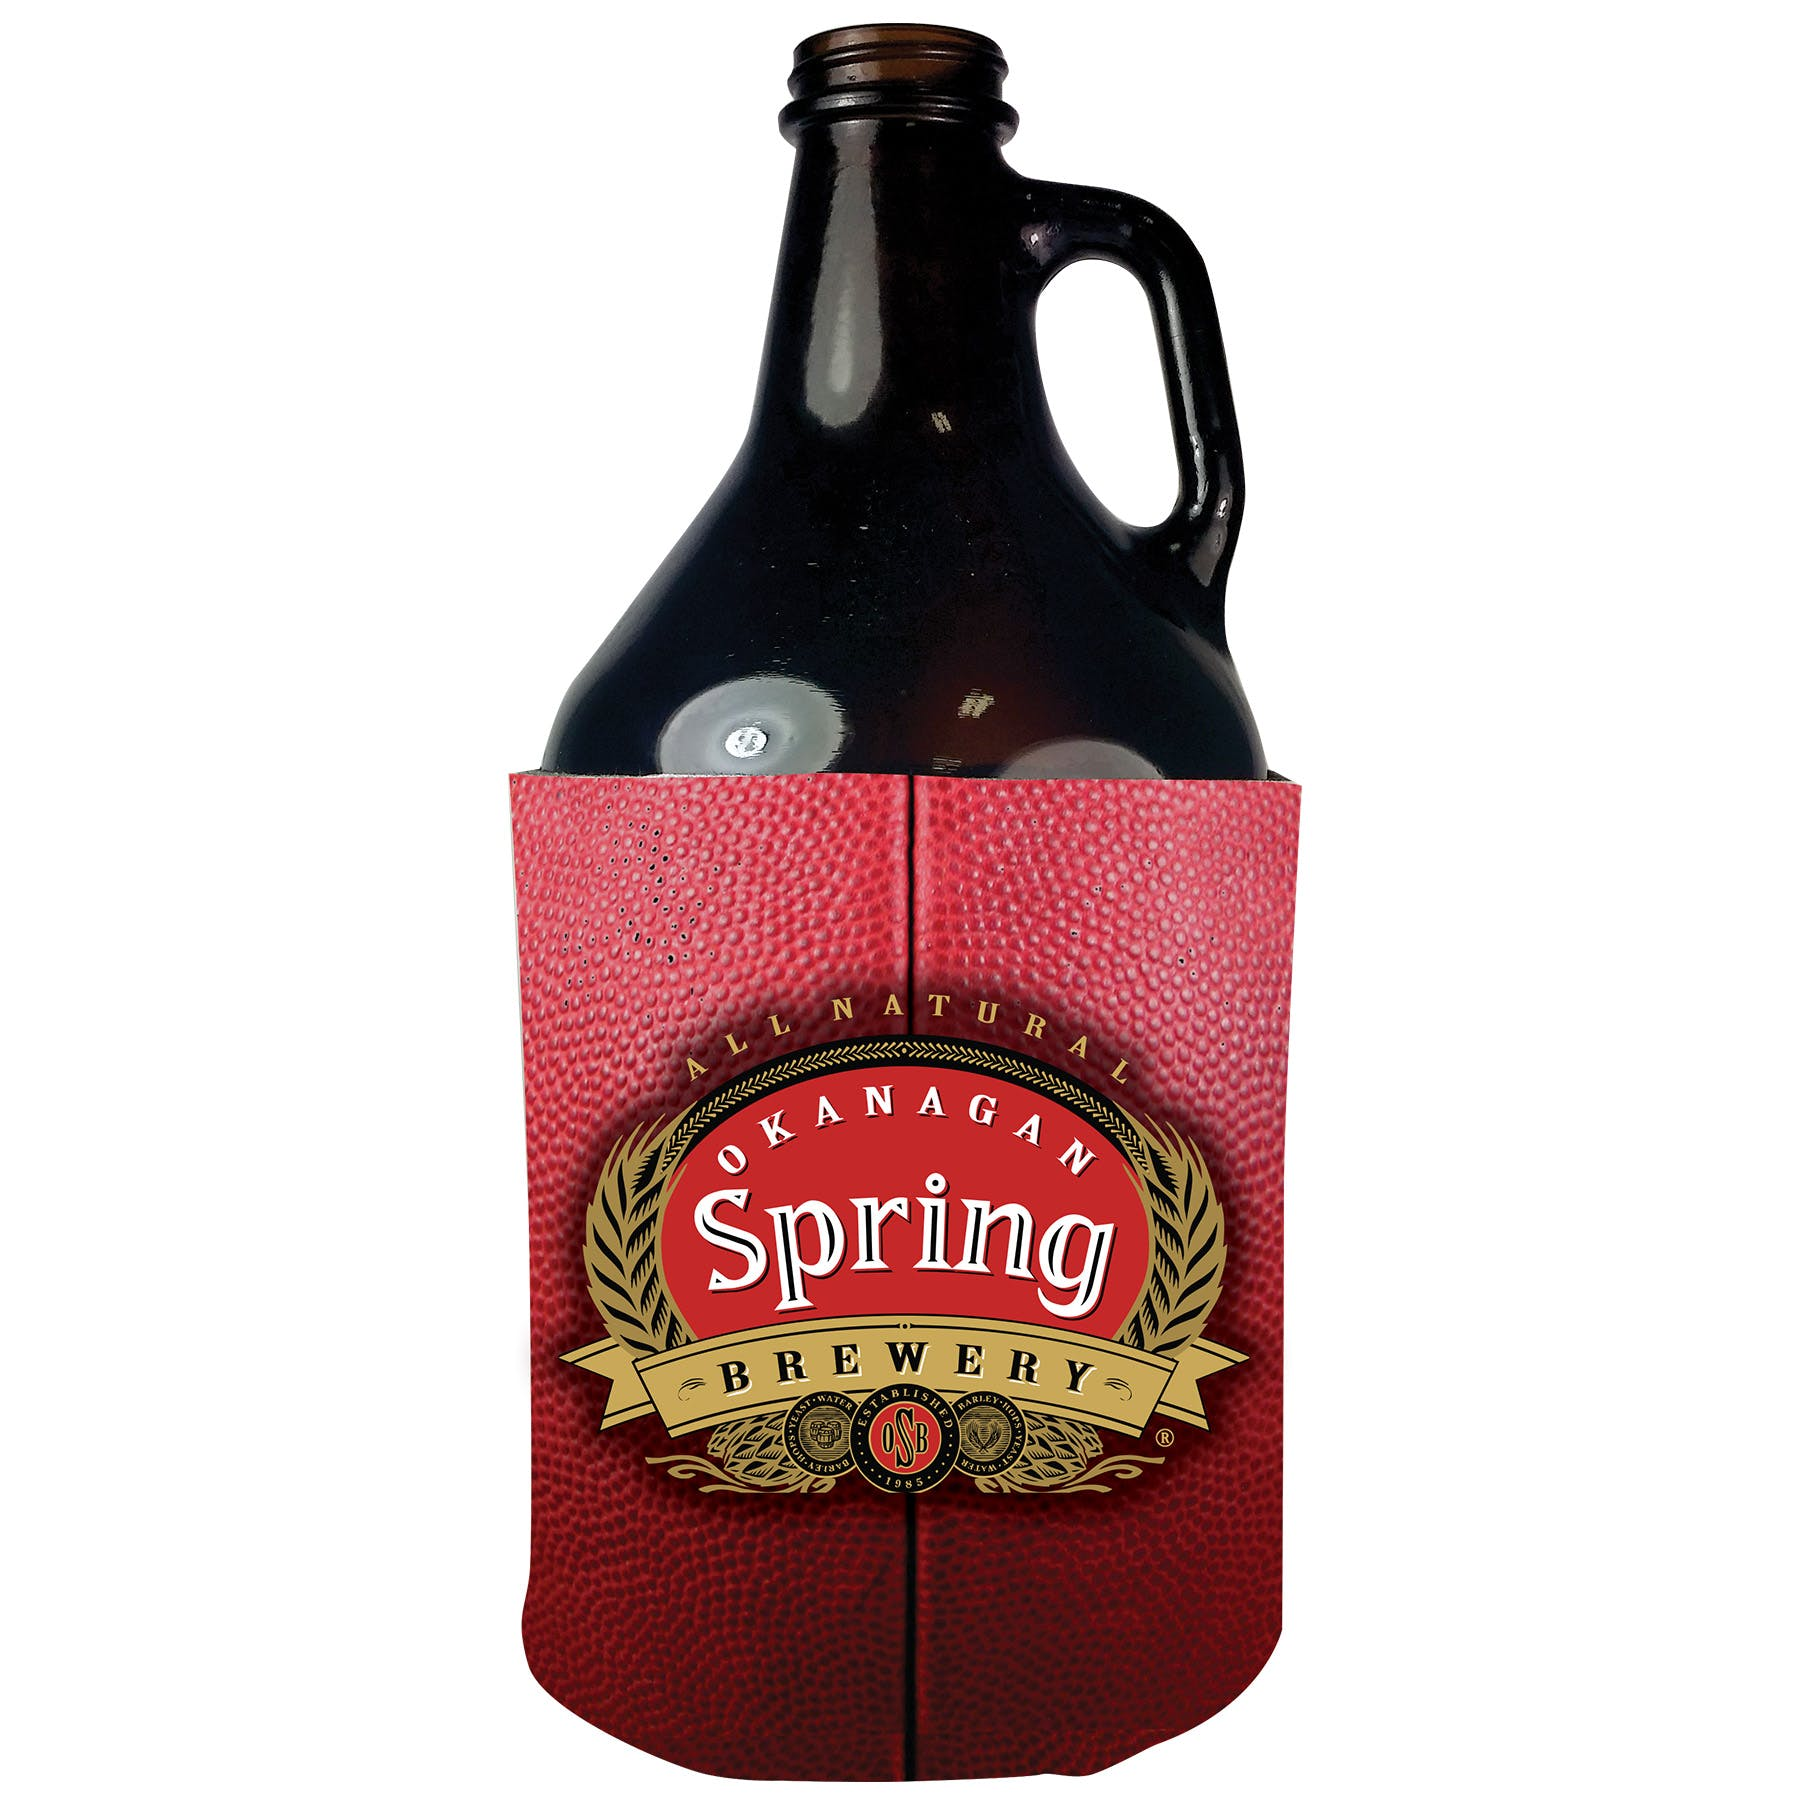 Growler Koozie (Item # HDGOM-JYRER) Koozie sold by InkEasy